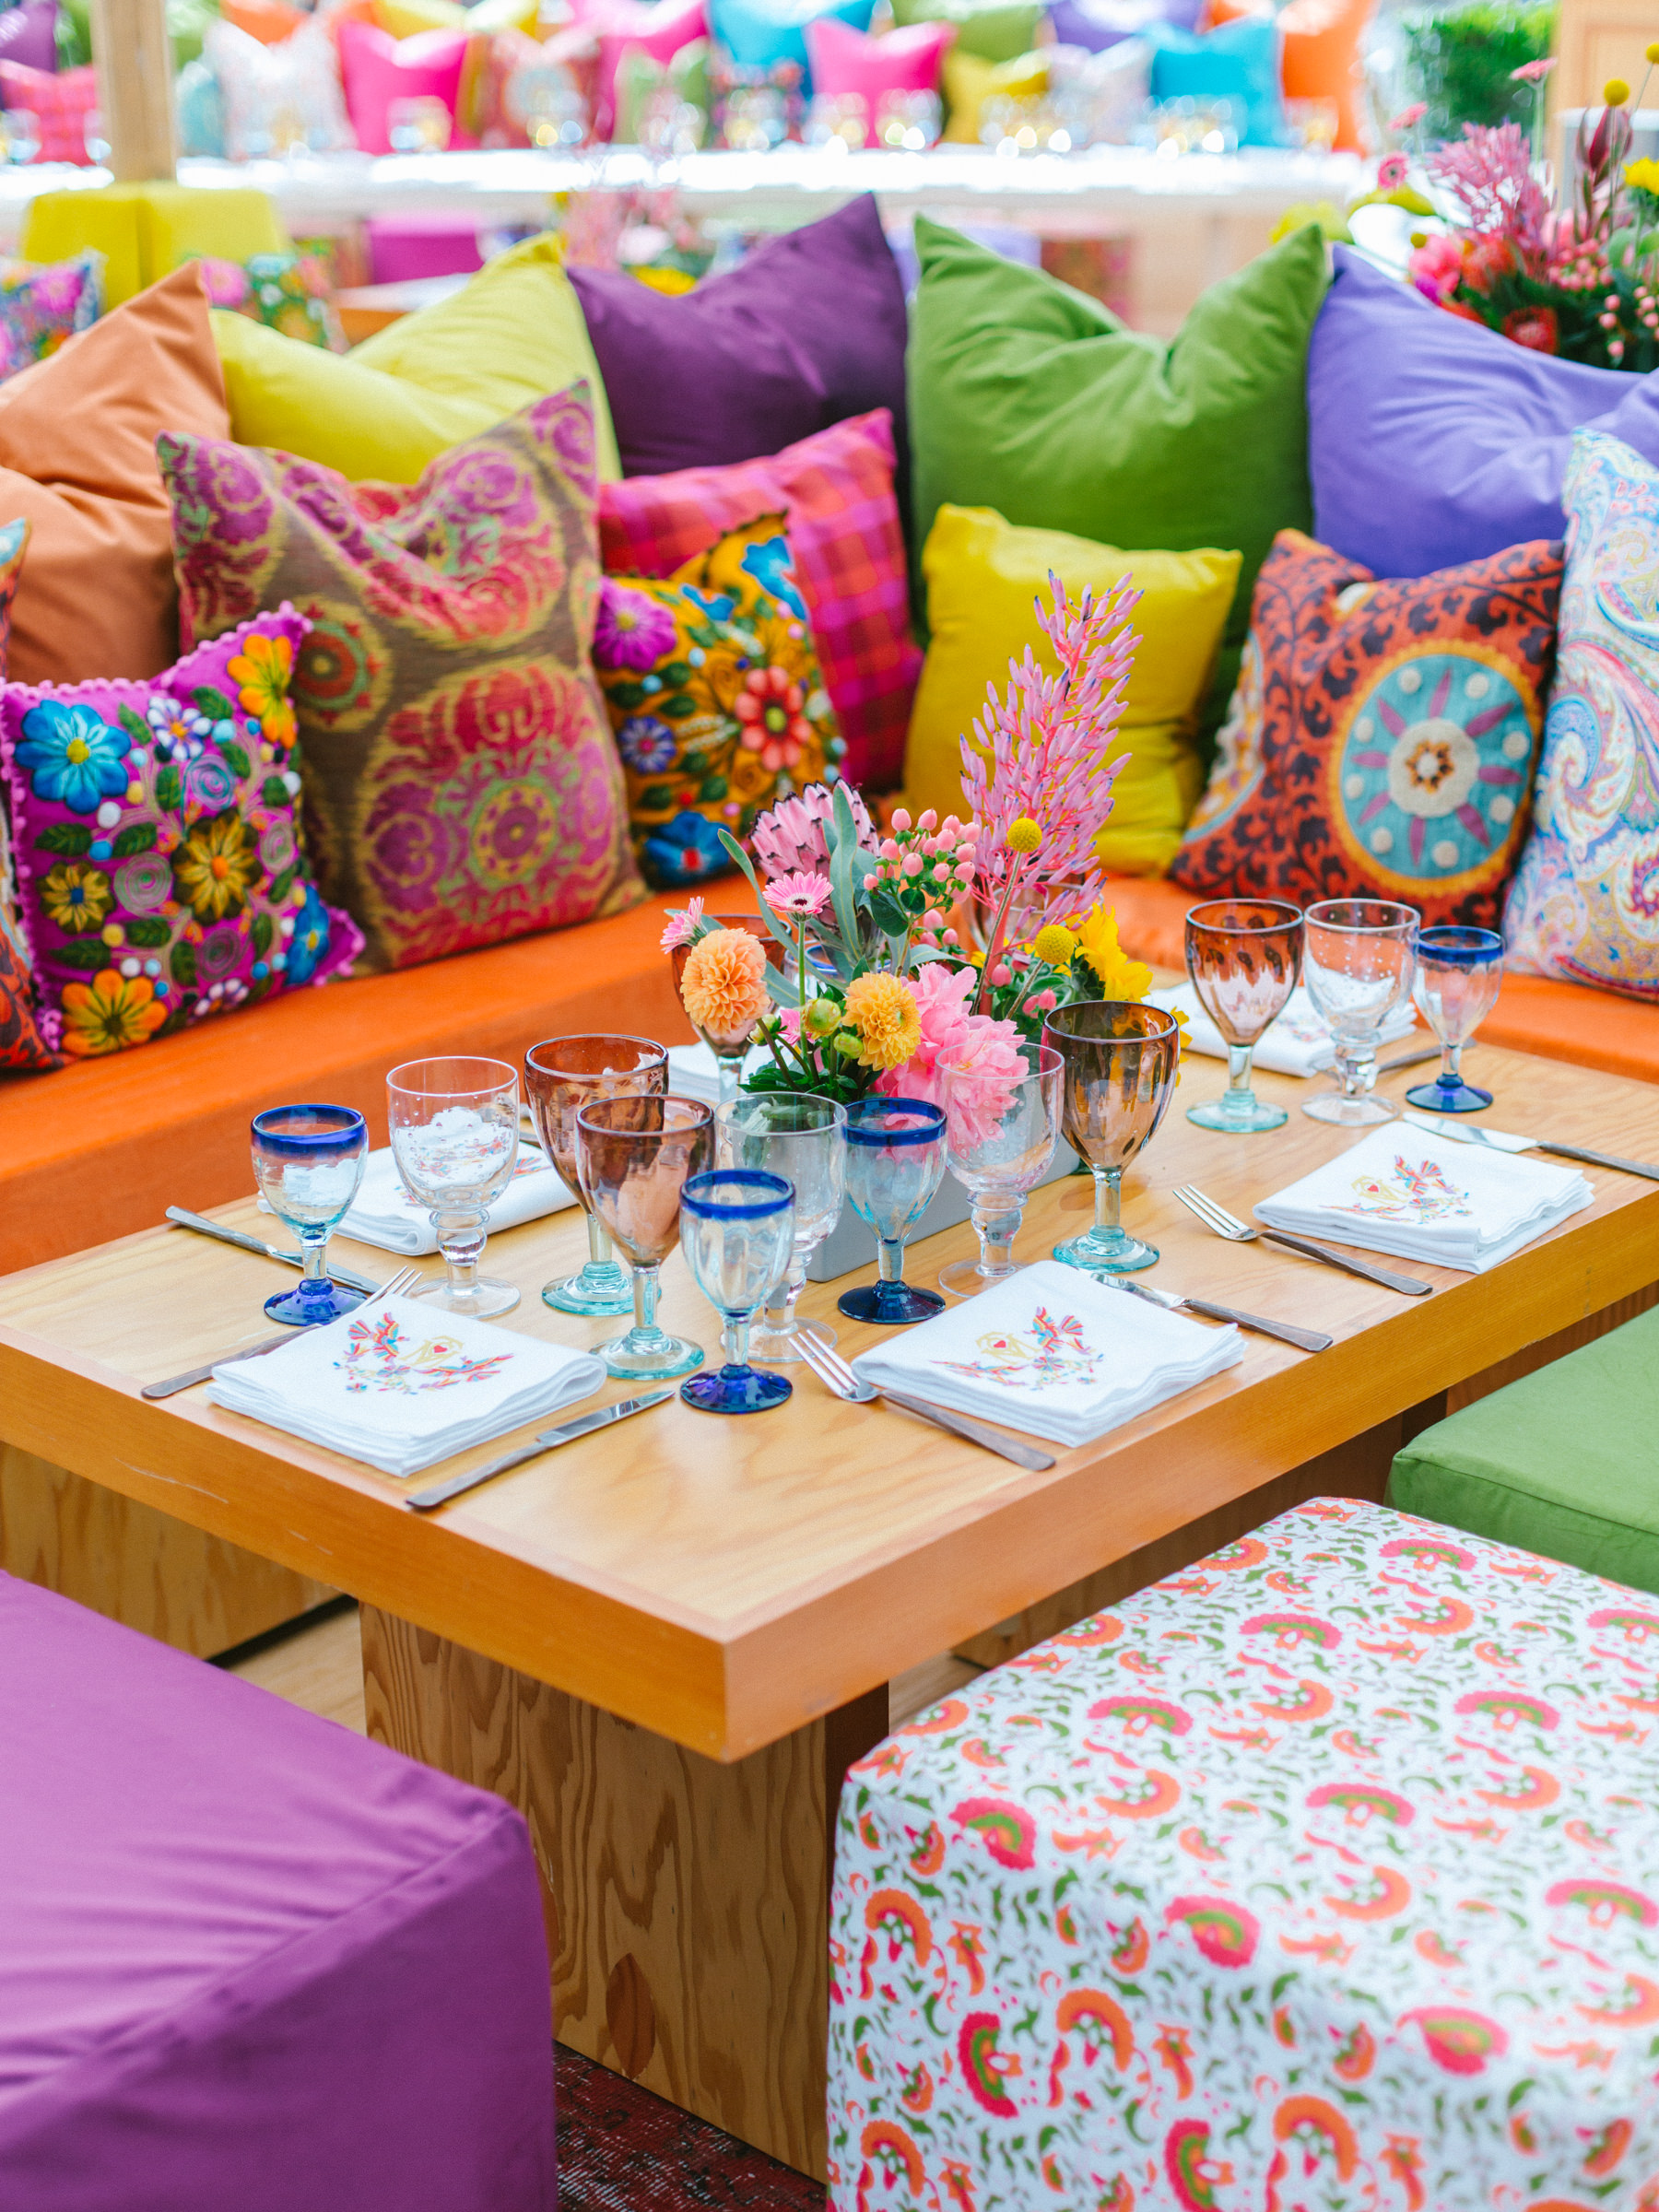 Colorful table against colorful cushions - photo by Amy and Stuart Photography